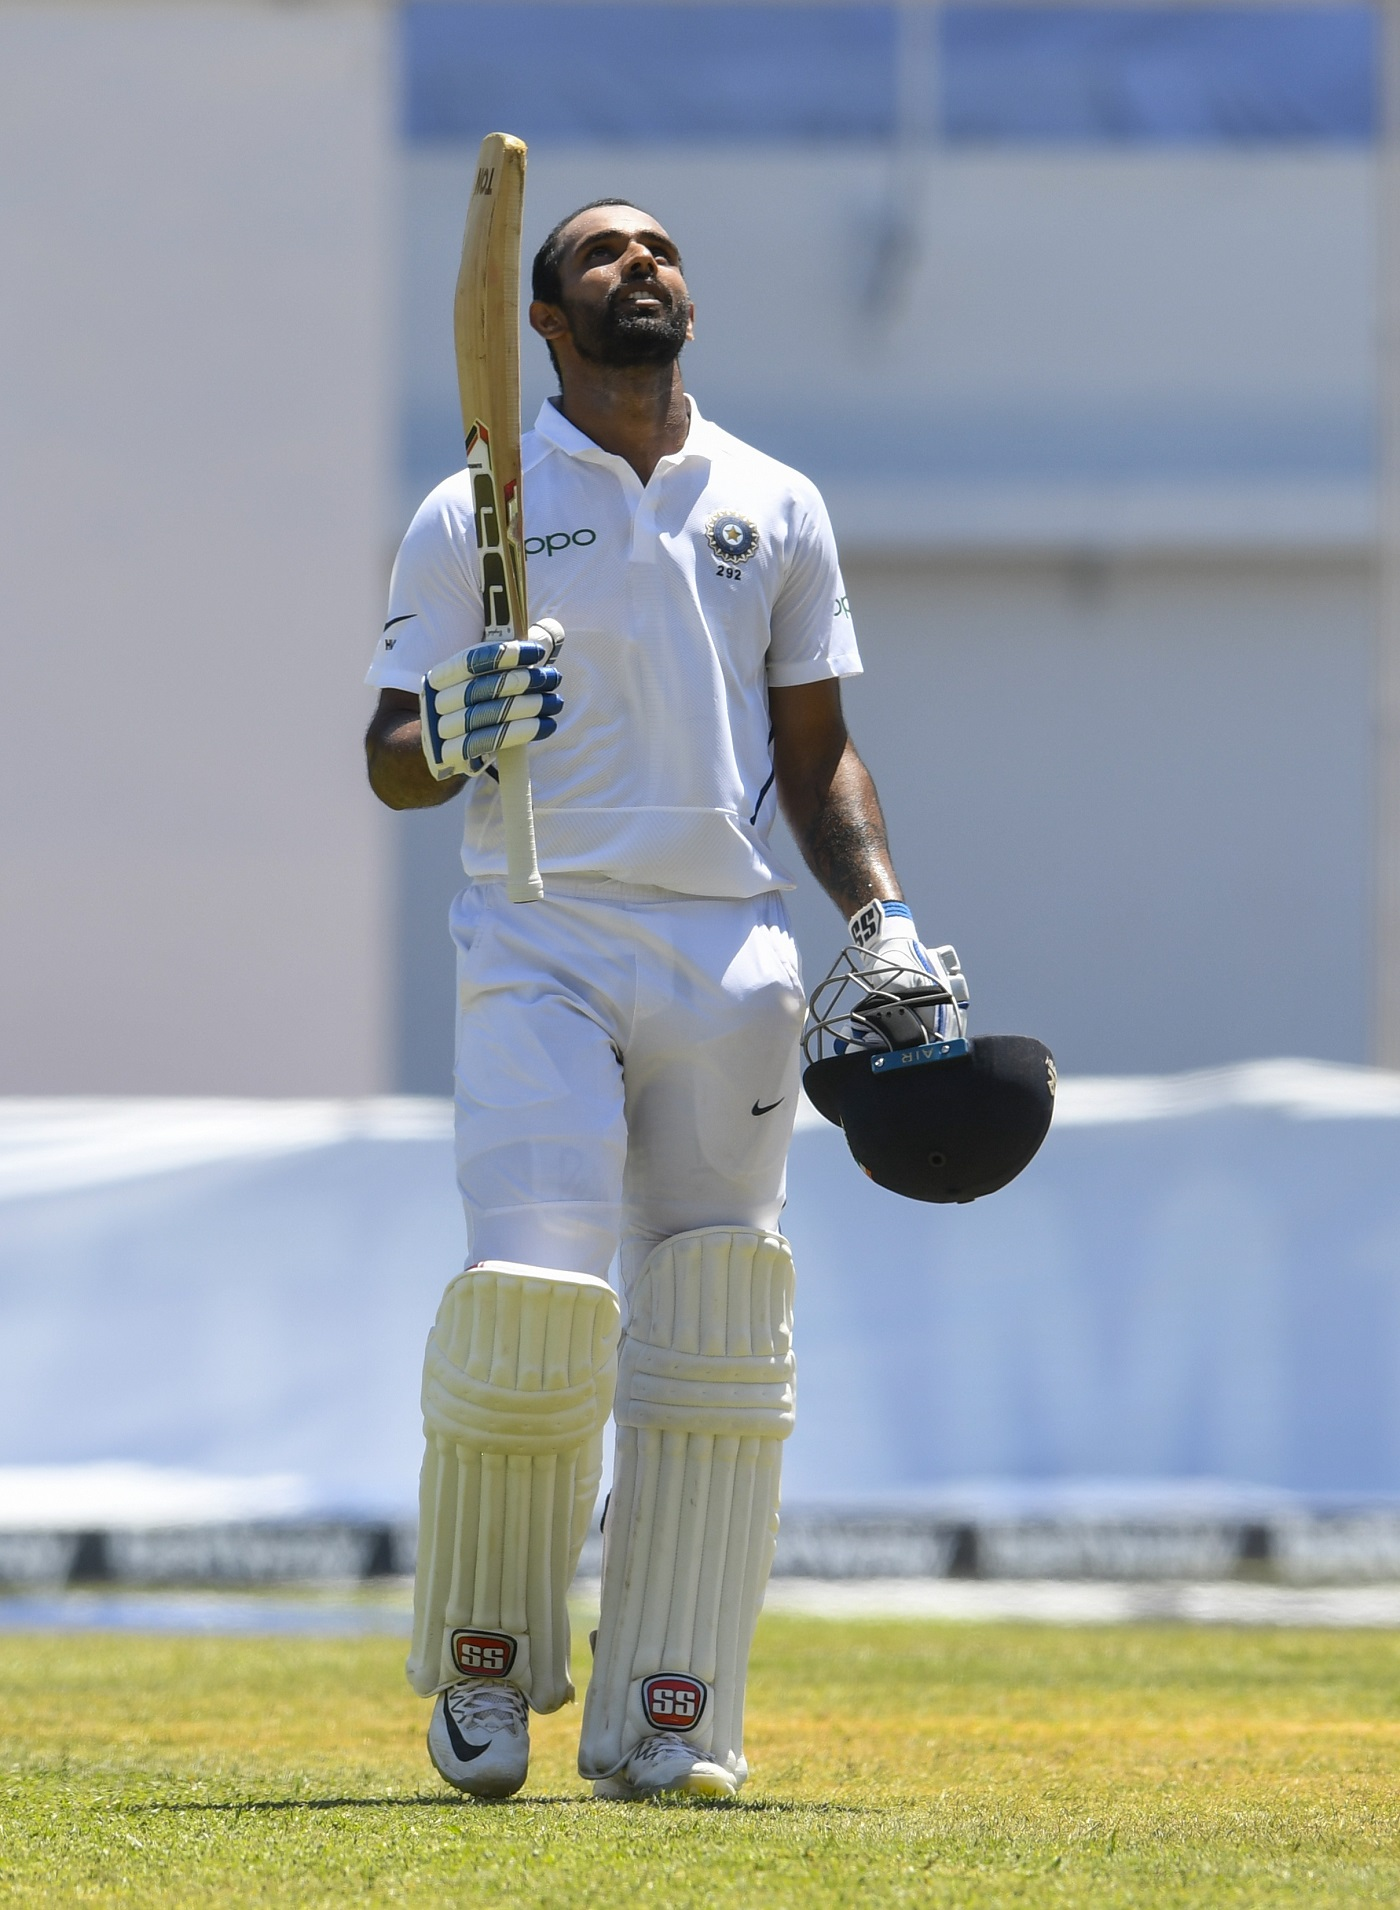 Vihari's first Test hundred came in Jamaica this year. He finished the two Tests with 289 runs at an average of over 96